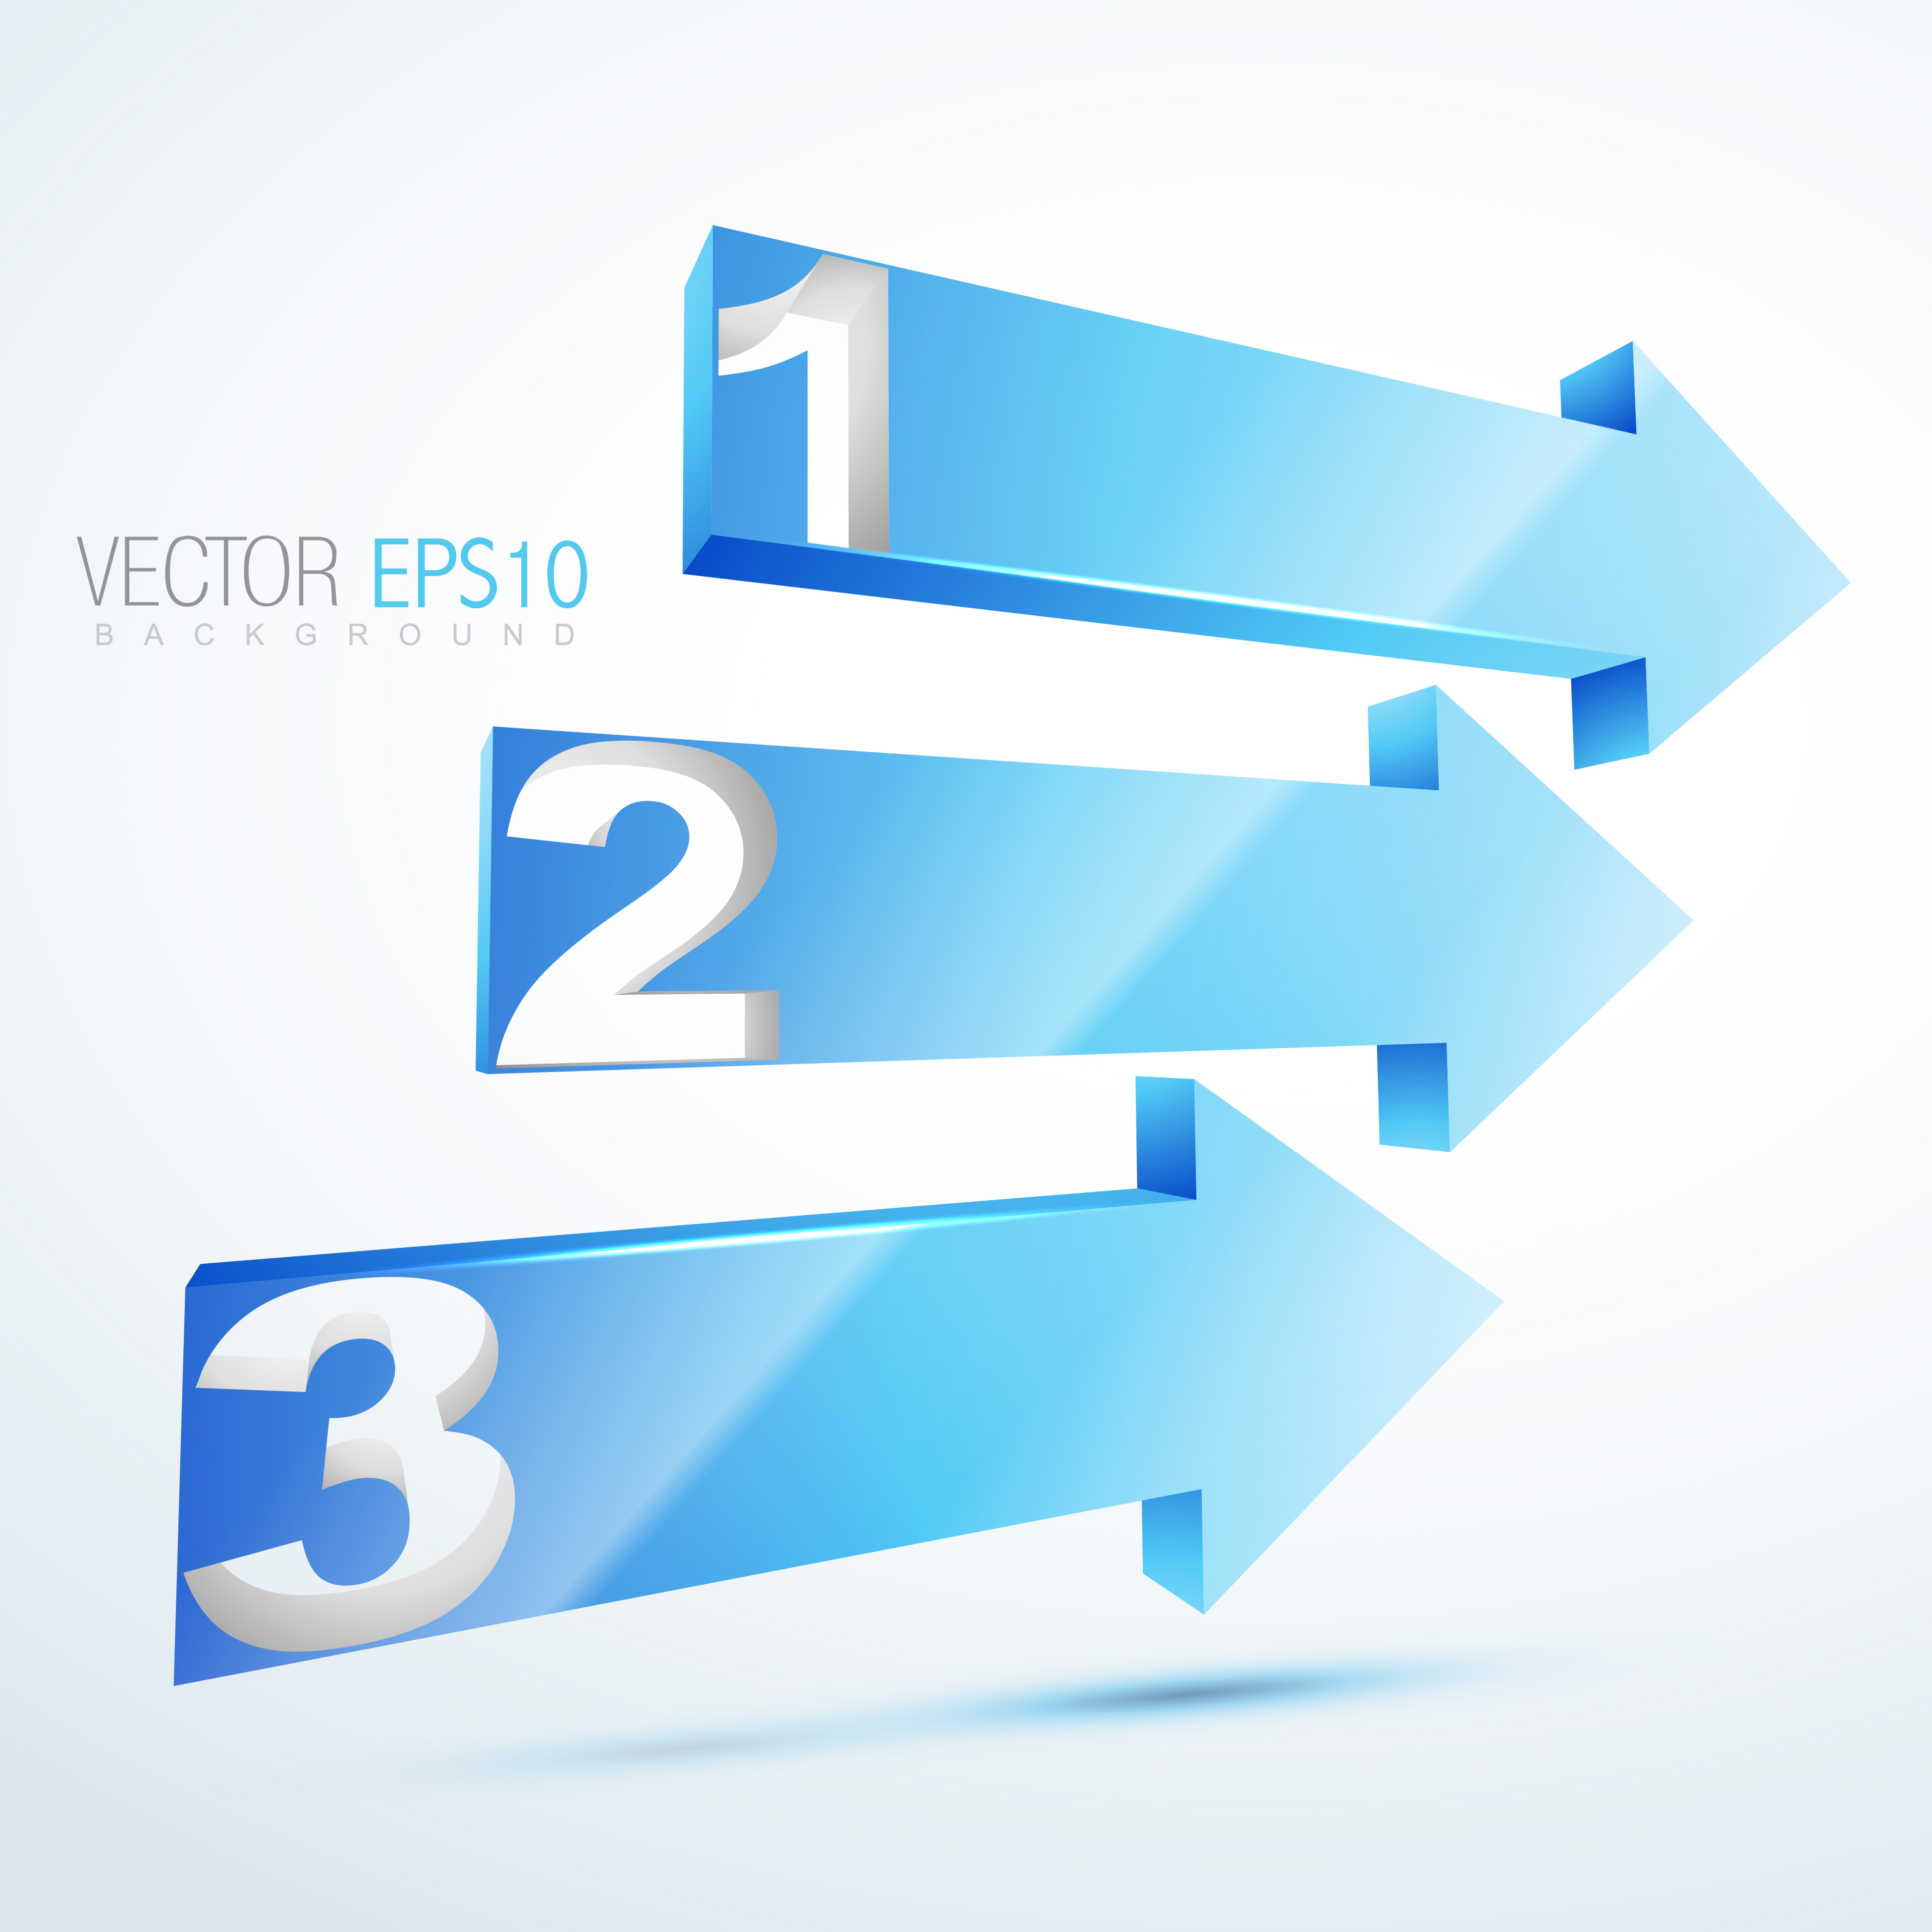 Numbers Free Vector Art - (7454 Free Downloads)